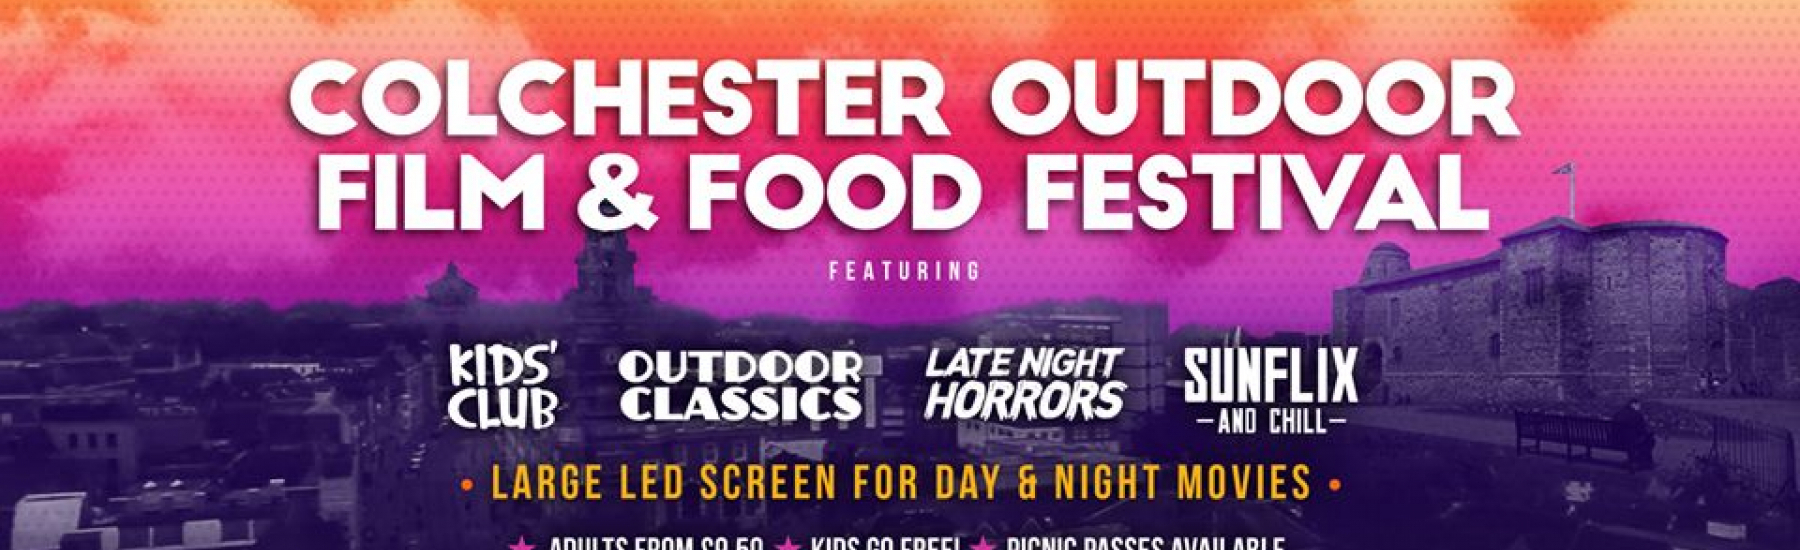 Outdoor Film & Food Festival - Colchester